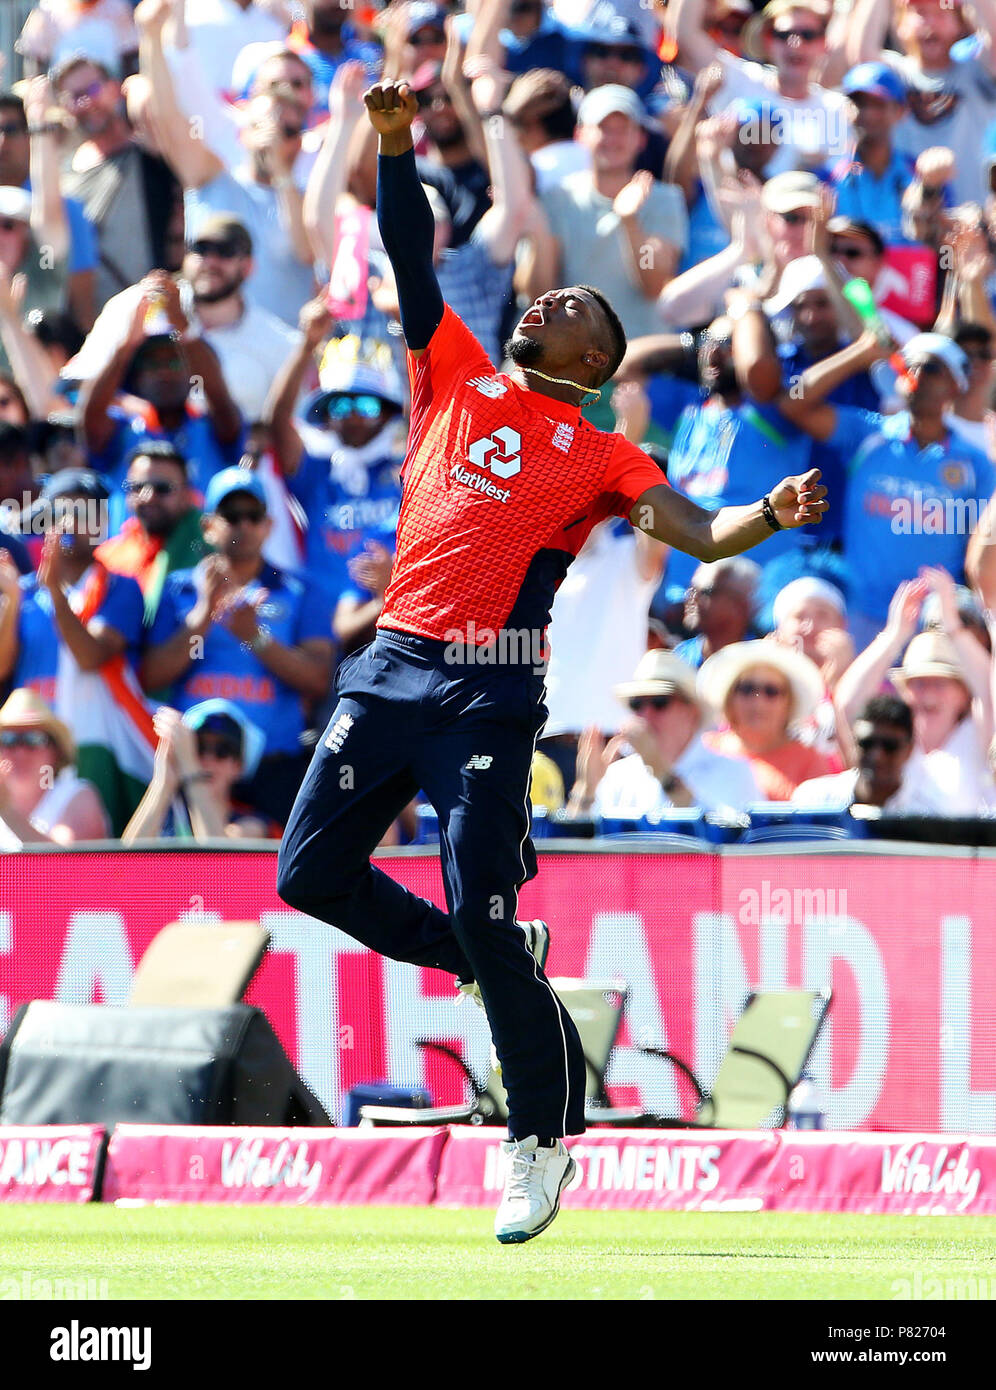 England's Chris Jordan celebrates after catching India's KL Rahul during the Second Vitality IT20 Series Match at the Brightside Ground, Bristol. - Stock Image